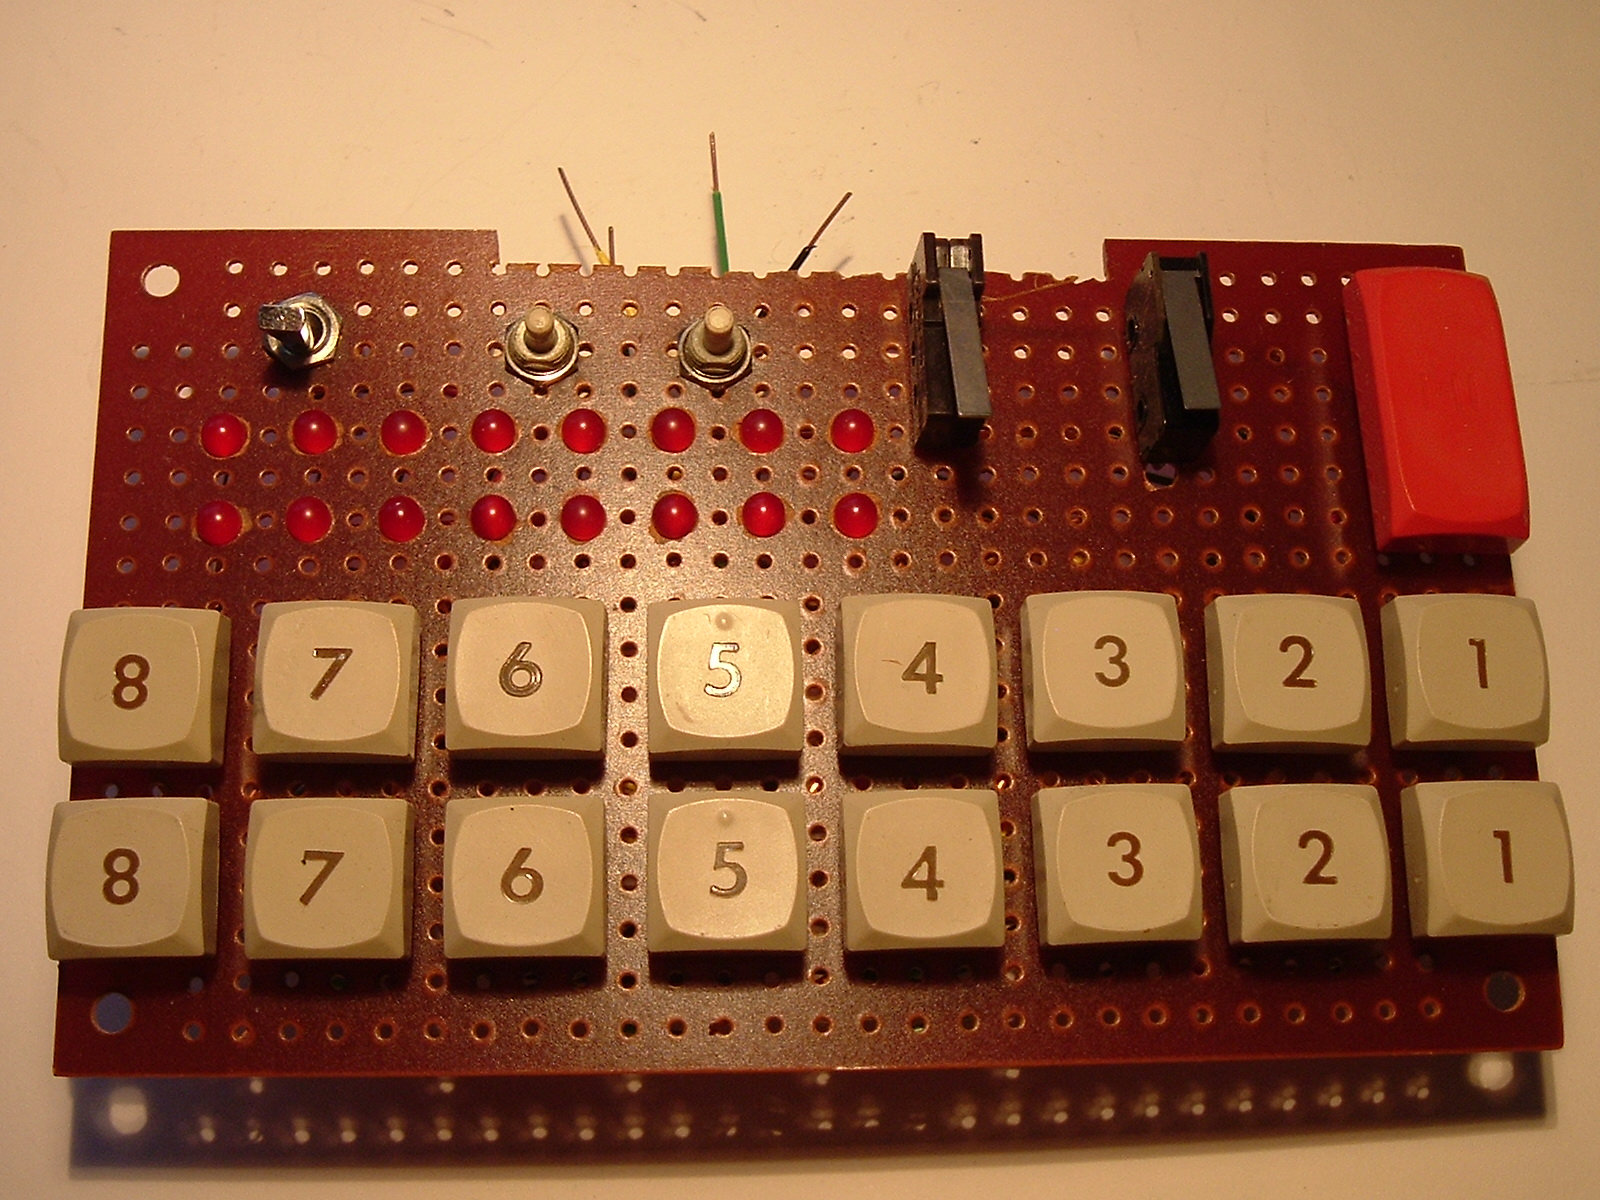 Led Bcd To Sevensegment Decoder With A Seven Segment Display I Made This Panel Long Ago Probably For Homebrew Eprom Programmer Step Up From The One Classmate Using Only Toggle Switches